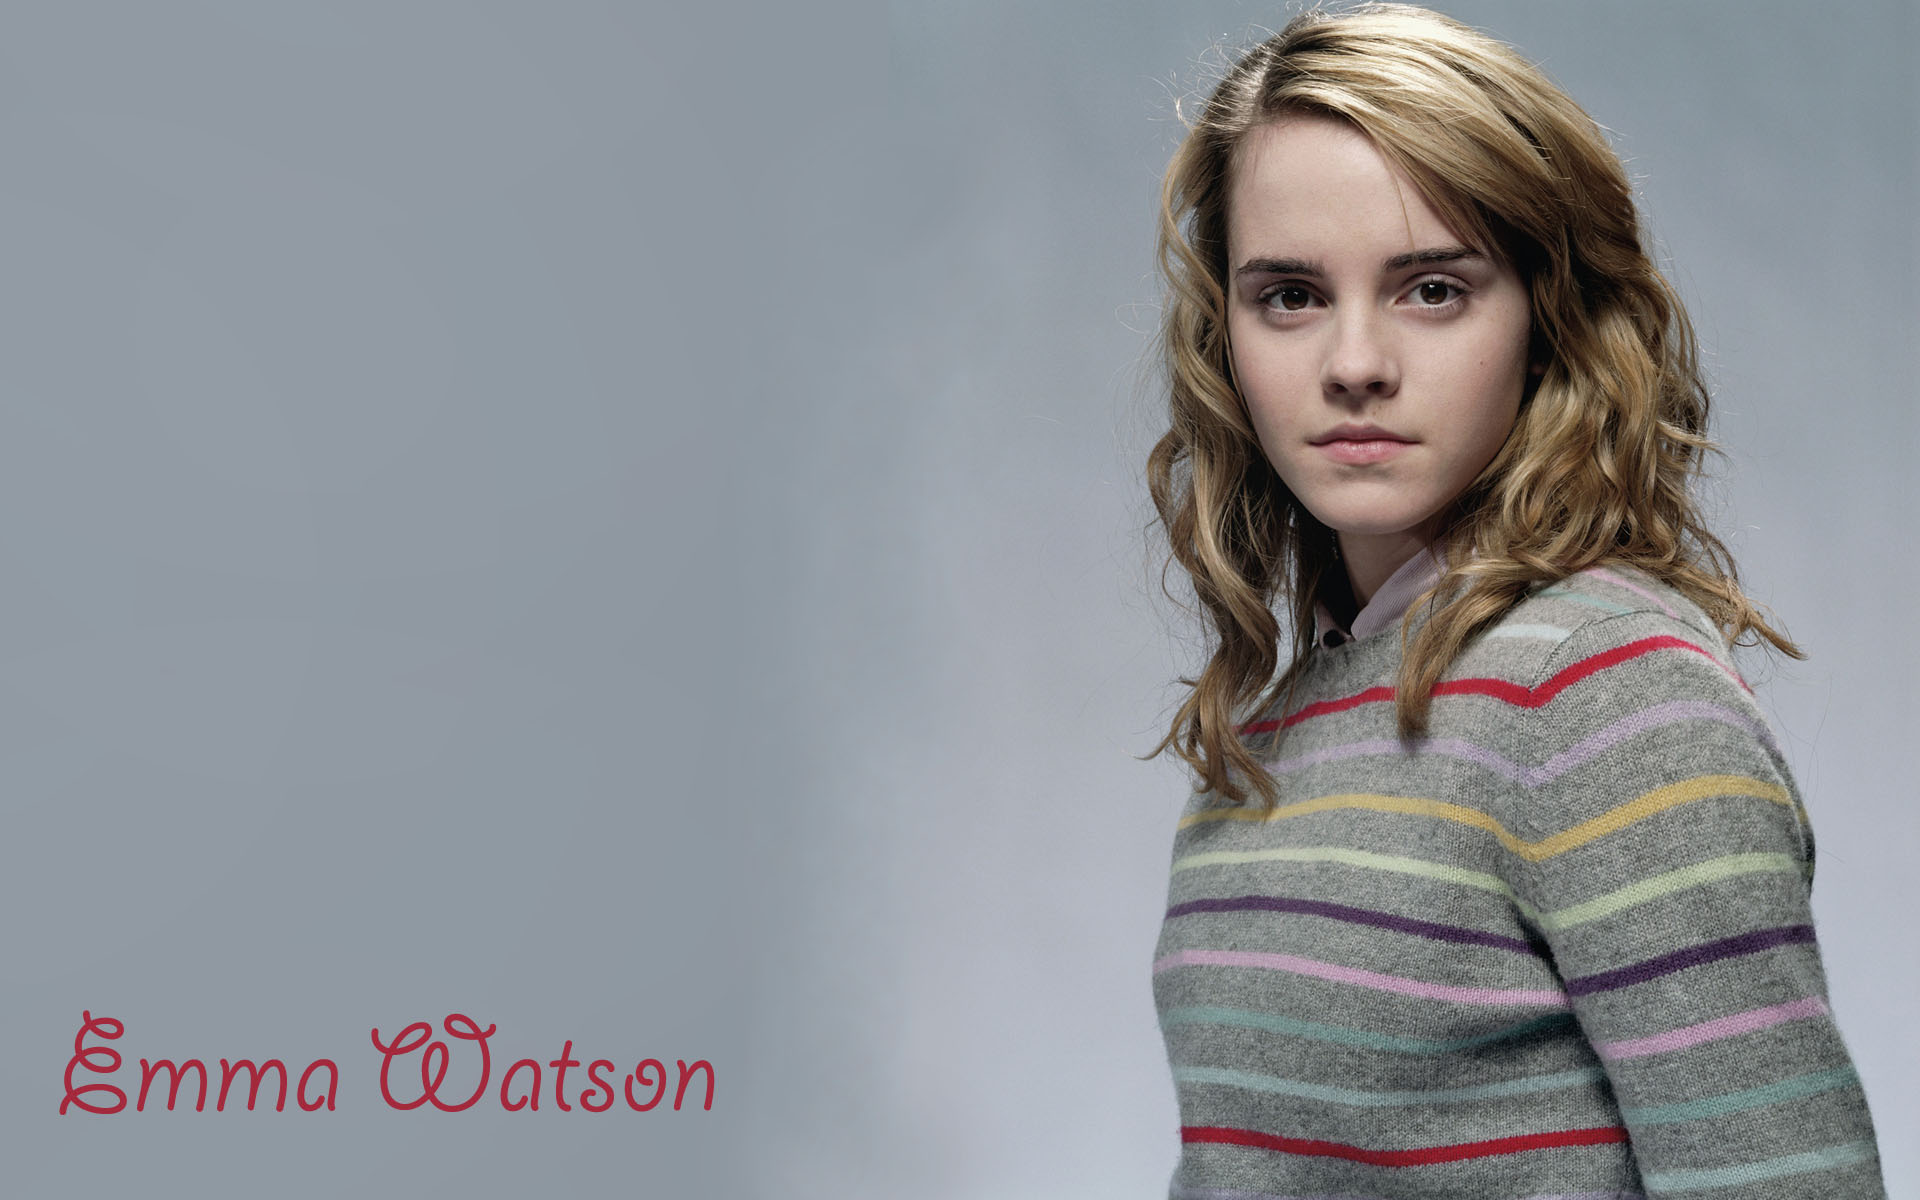 HD Wallpapers Emma Watson Wide High Quality